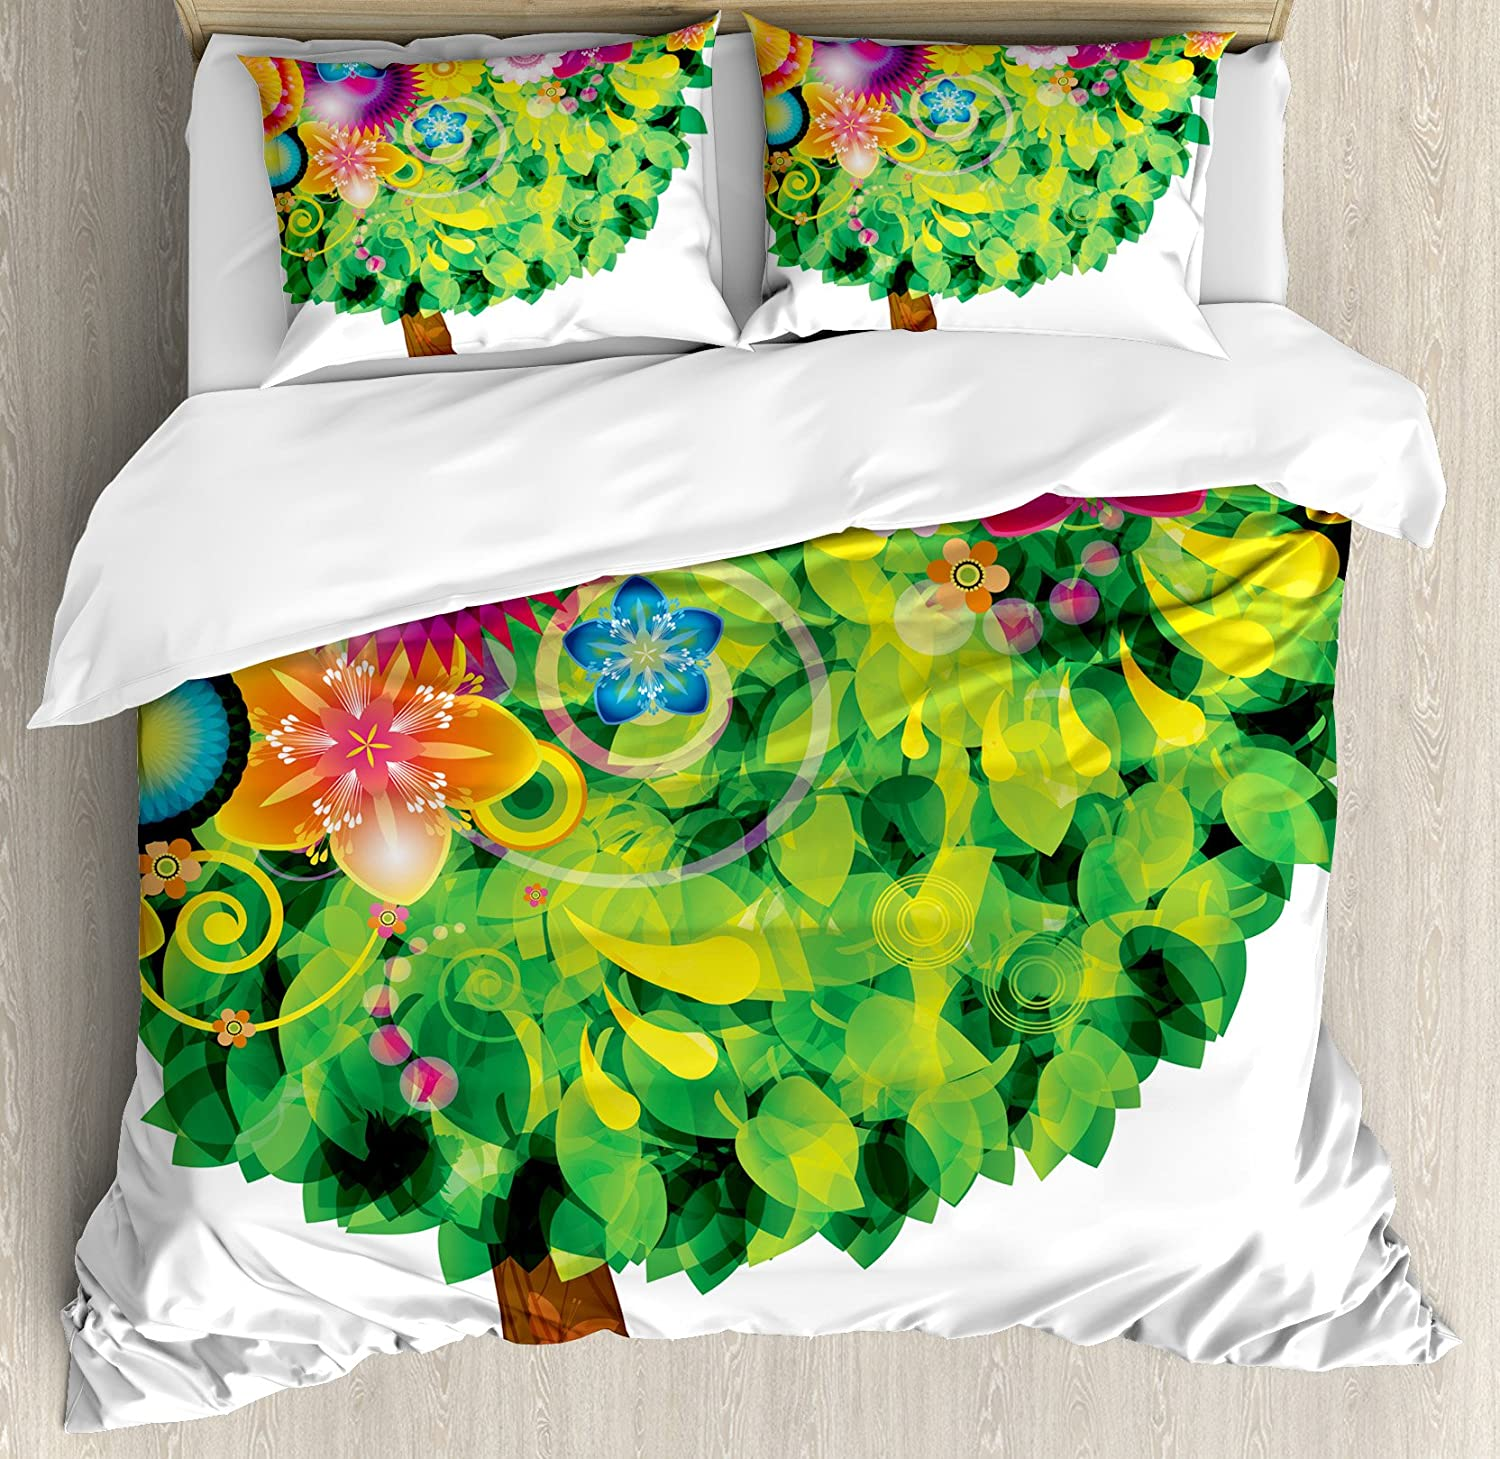 Ambesonne Tree of Life Duvet Cover Set, Colorful Tree Fantasy Illustration with Blossoming Flowers Leaves Butterflies, Decorative 3 Piece Bedding Set with 2 Pillow Shams, King Size, Multicolor